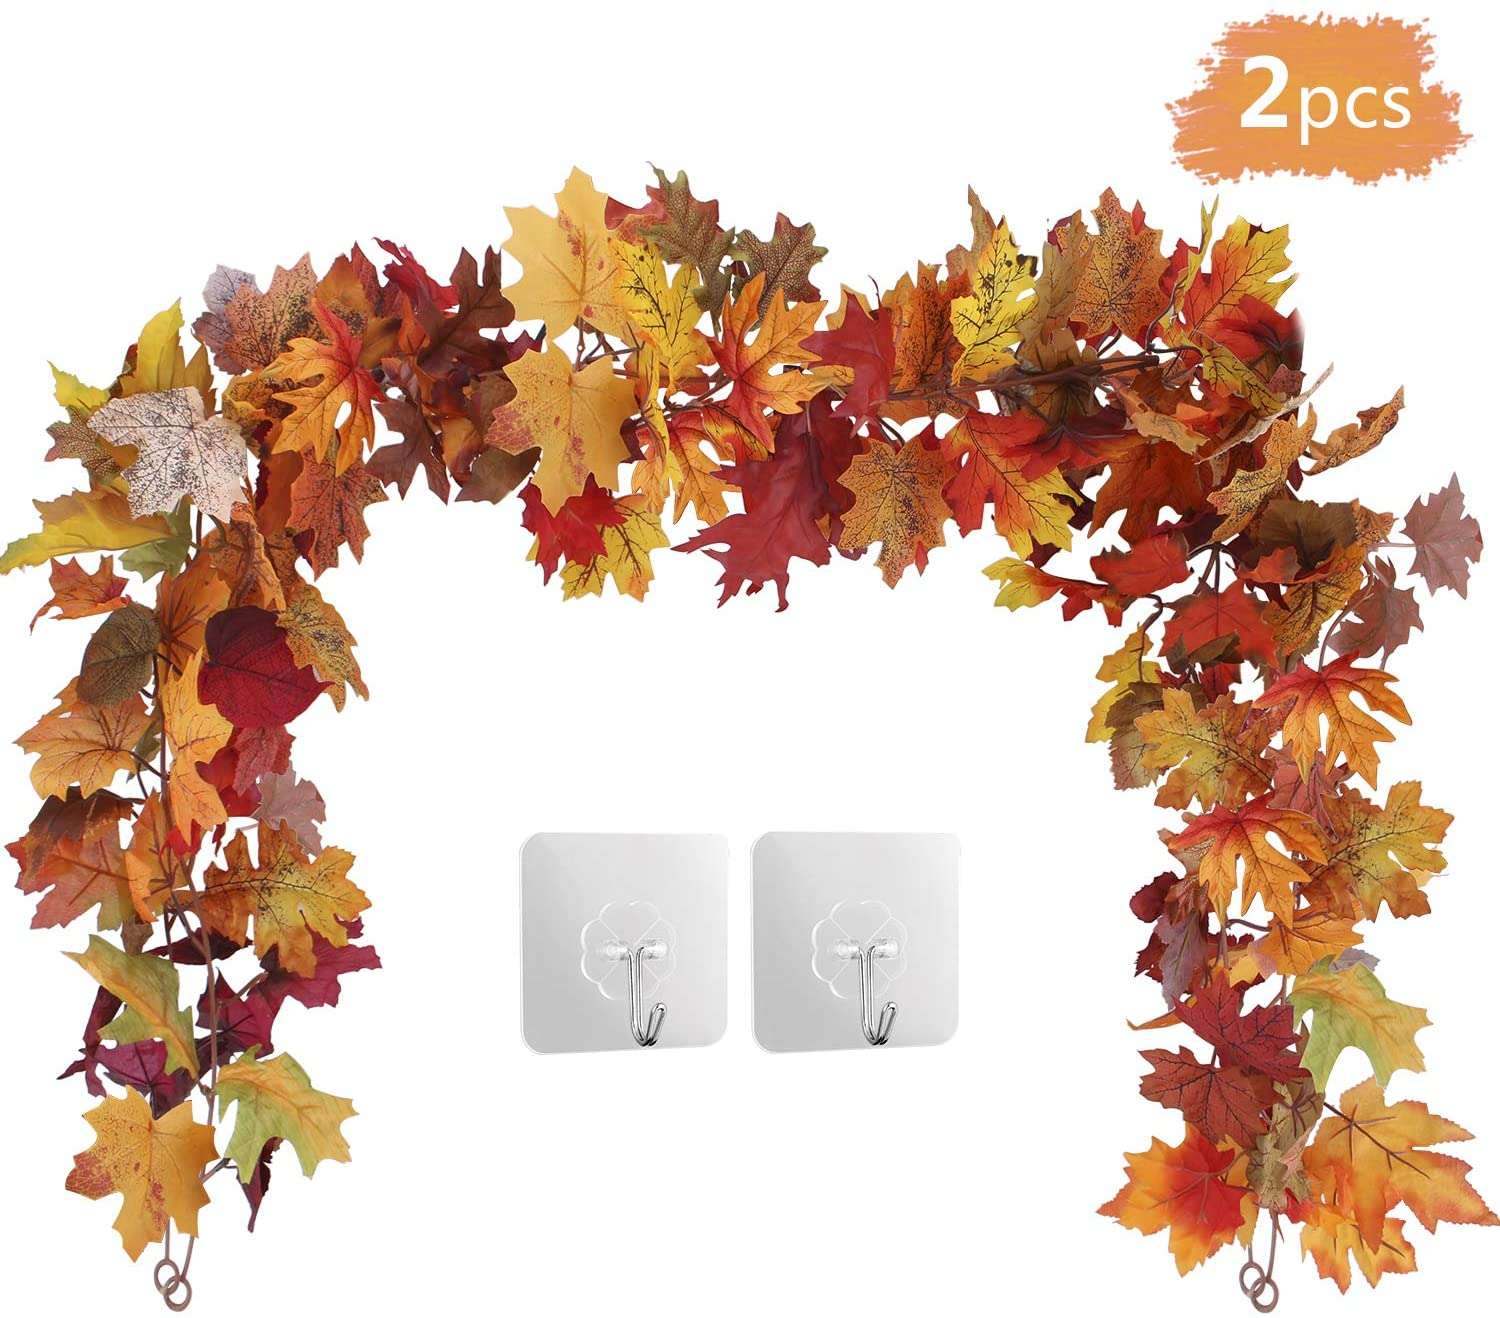 2 Pack Maple Leaf Garland Hanging Leaves Vine Artificial Autumn Foliage Garland Thanksgiving Decor For Home Wedding Party Christmas Walmart Canada